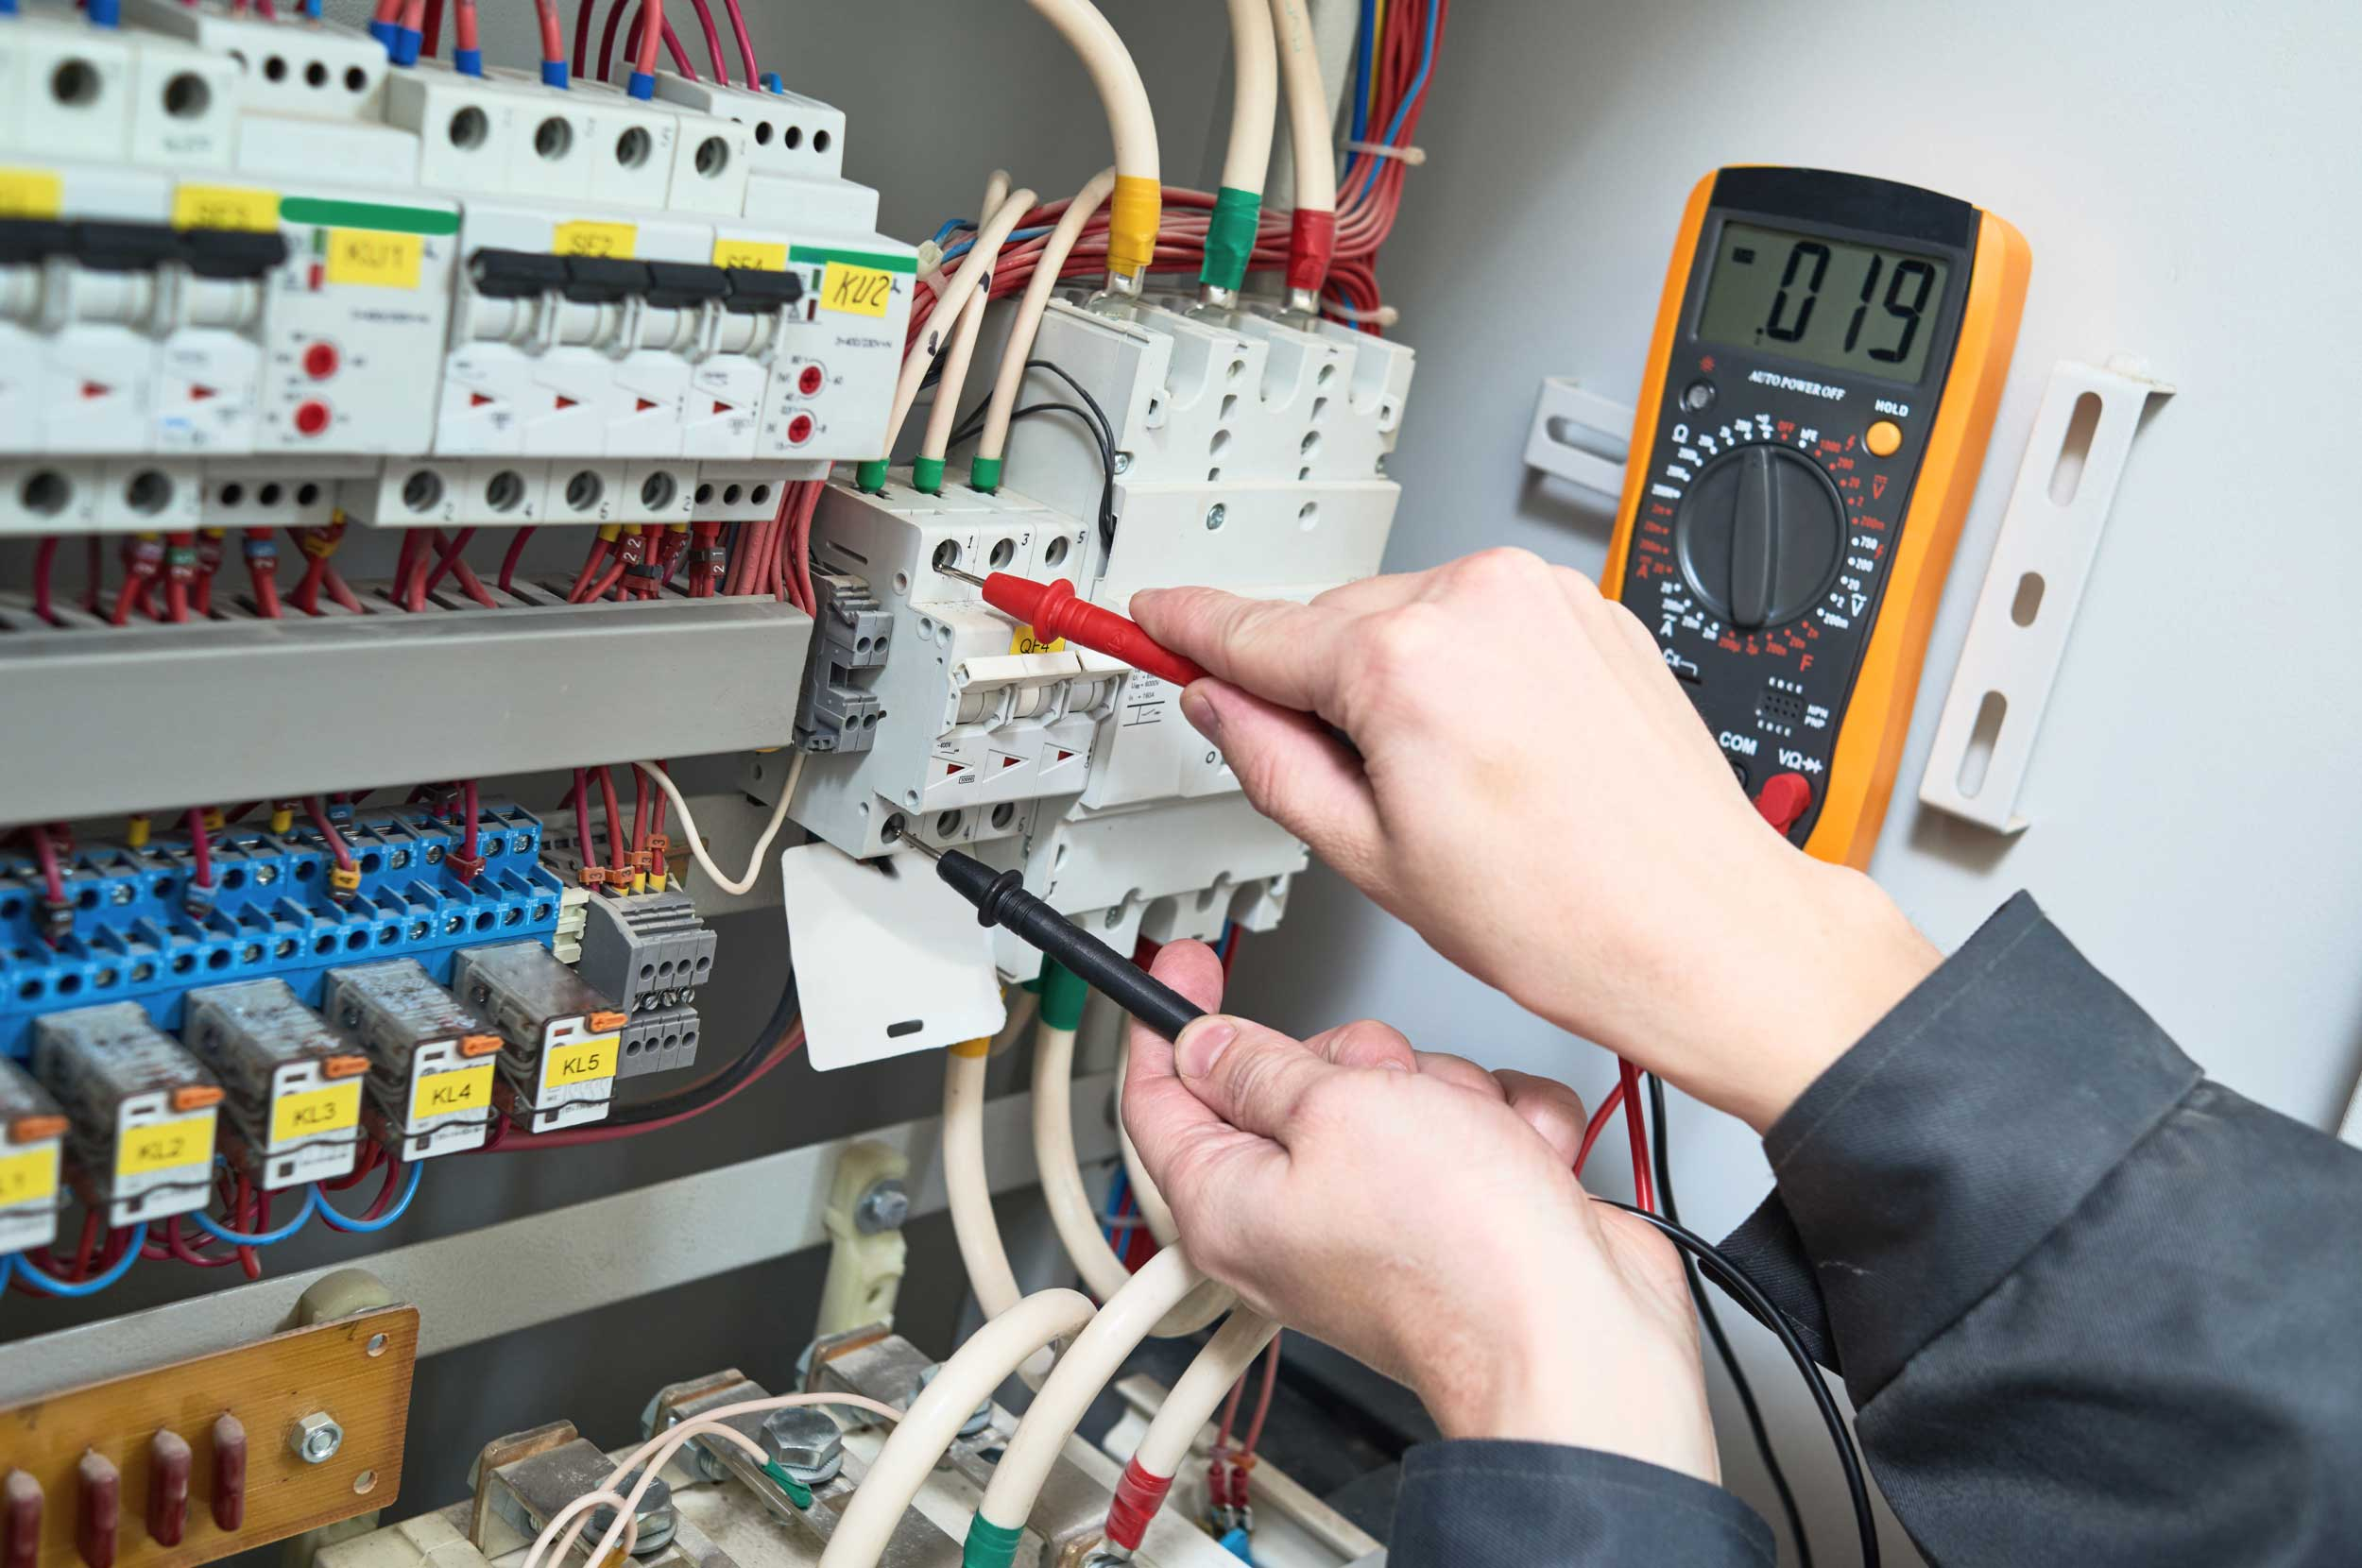 Electrician measures with multimeter tester